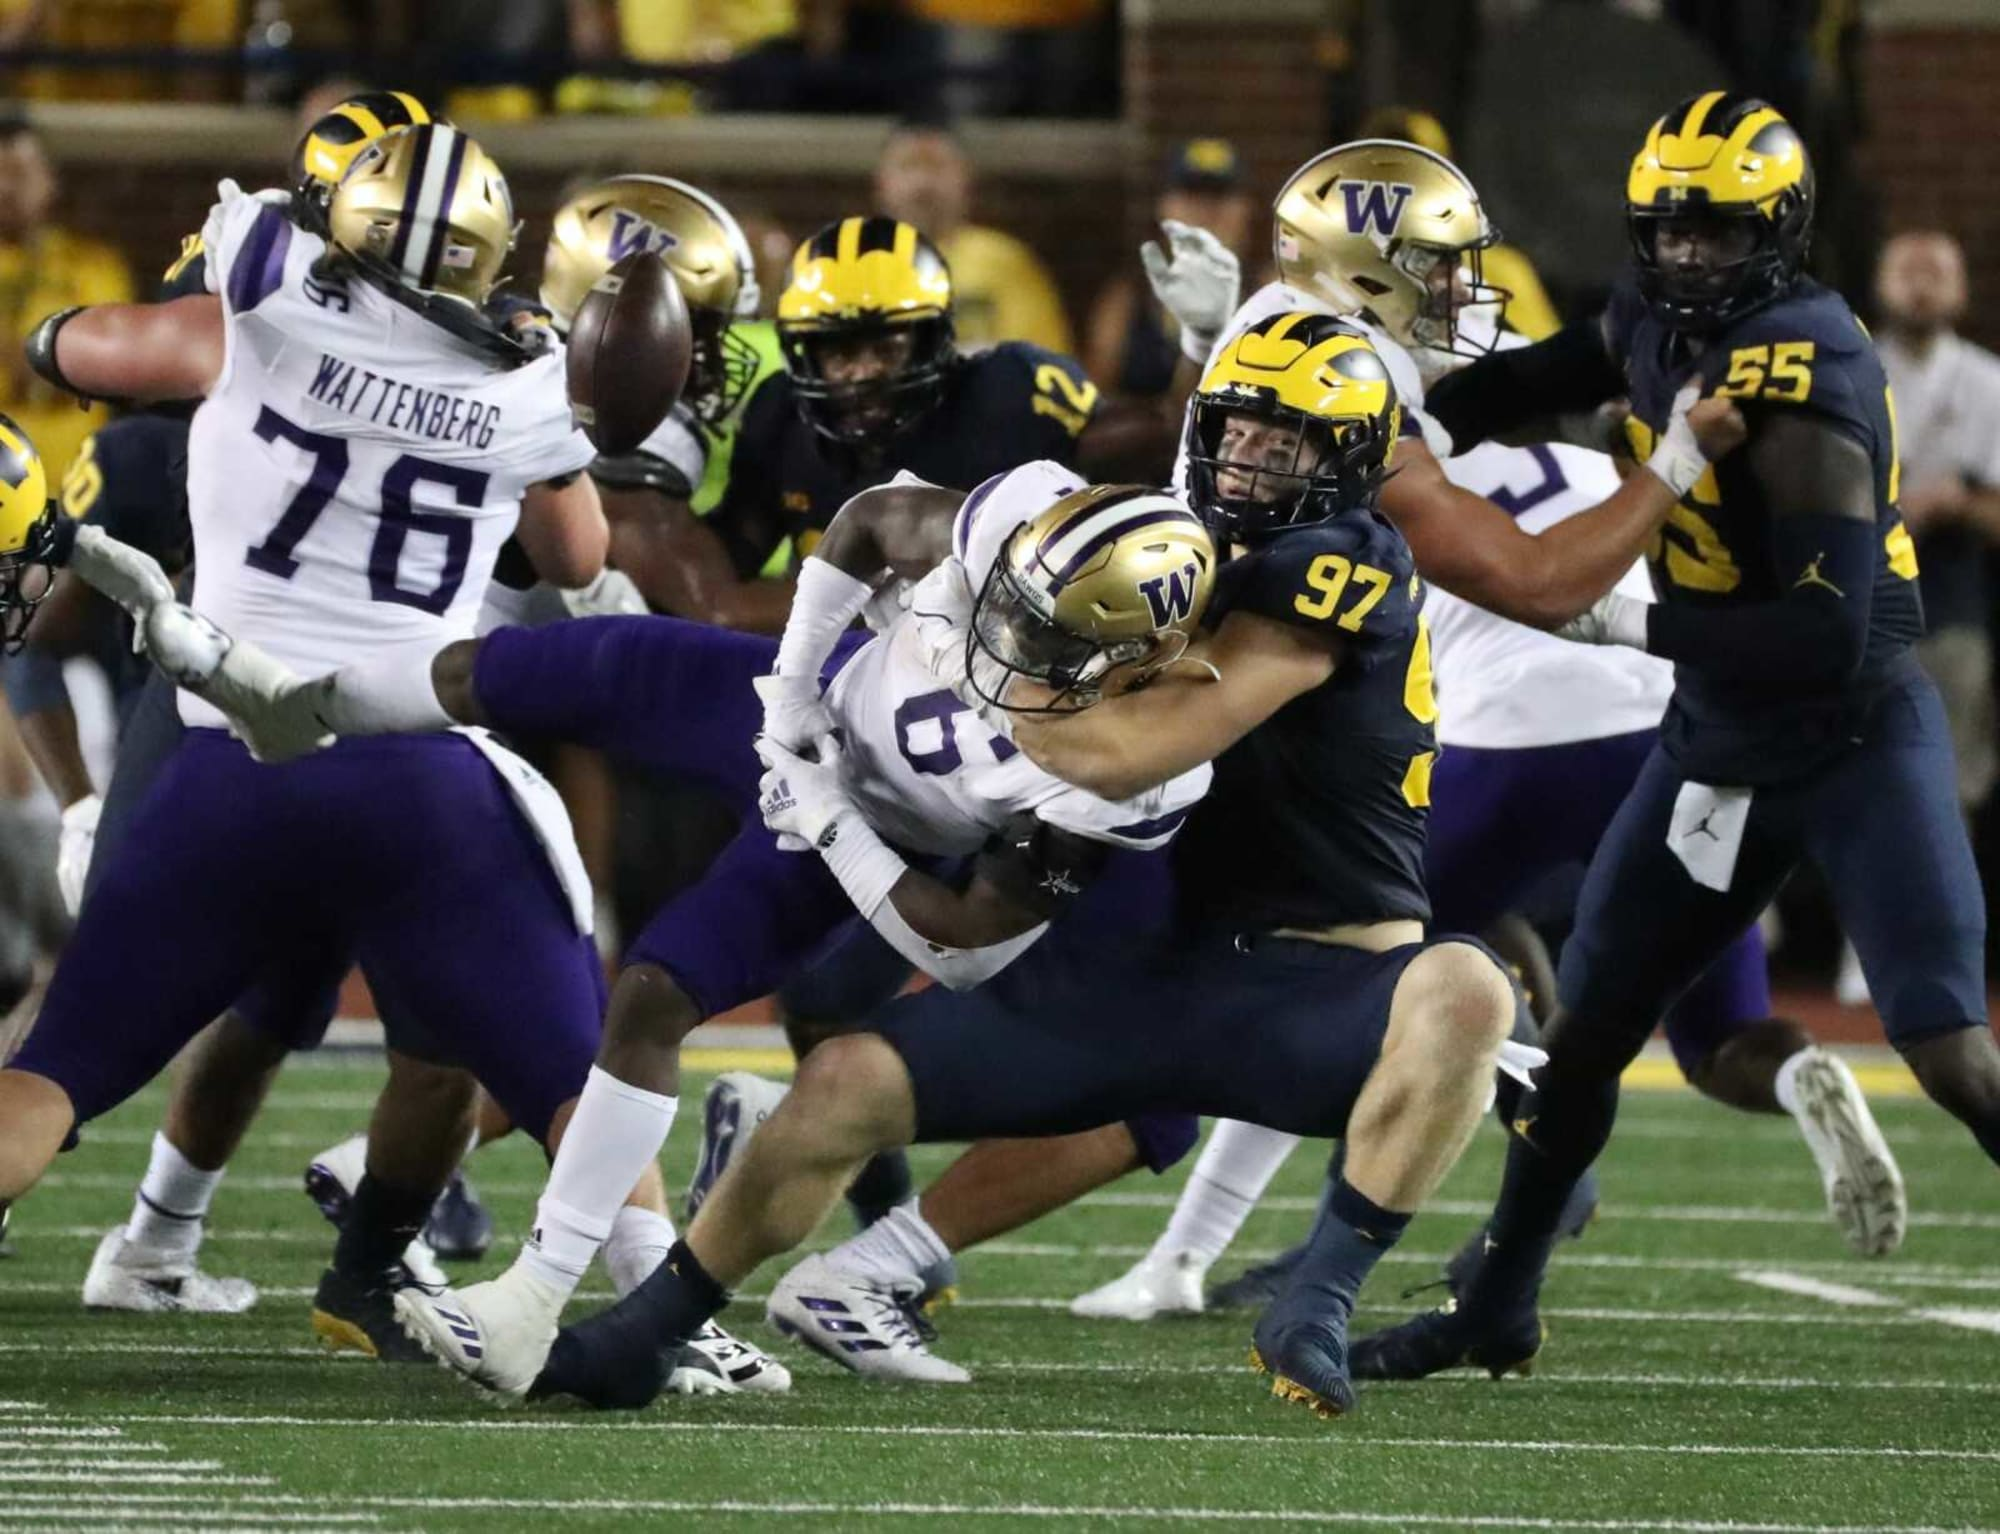 Michigan Football: 3 keys for Wolverines against Northern Illinois